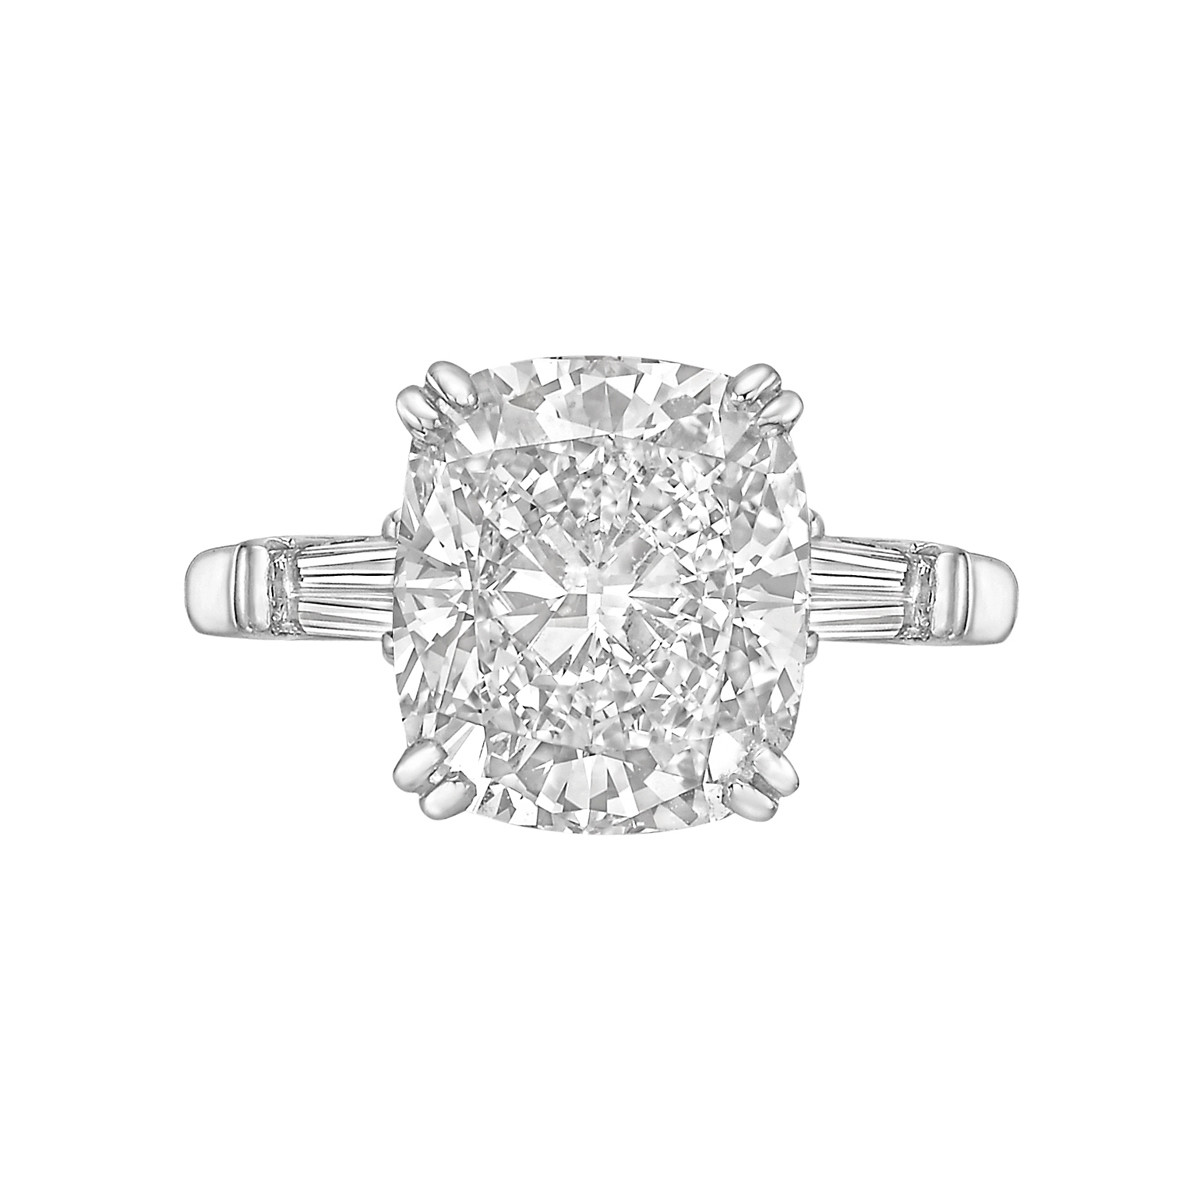 6.01ct Cushion-Cut Diamond Ring (D/VS1)